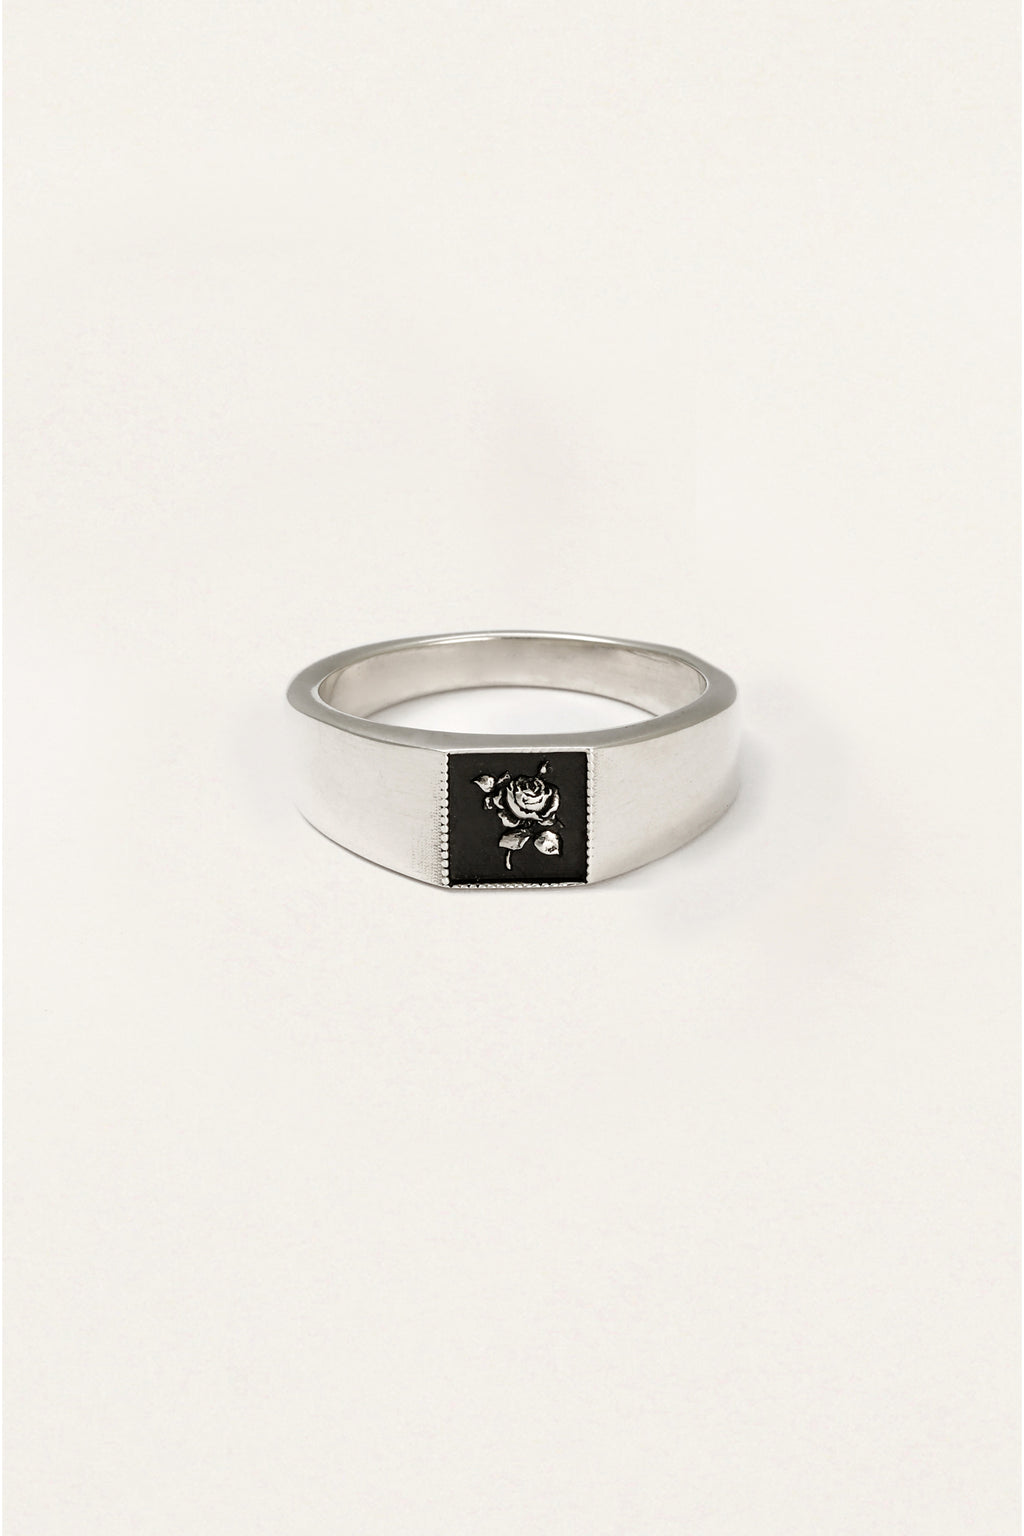 Rose Signet Ring